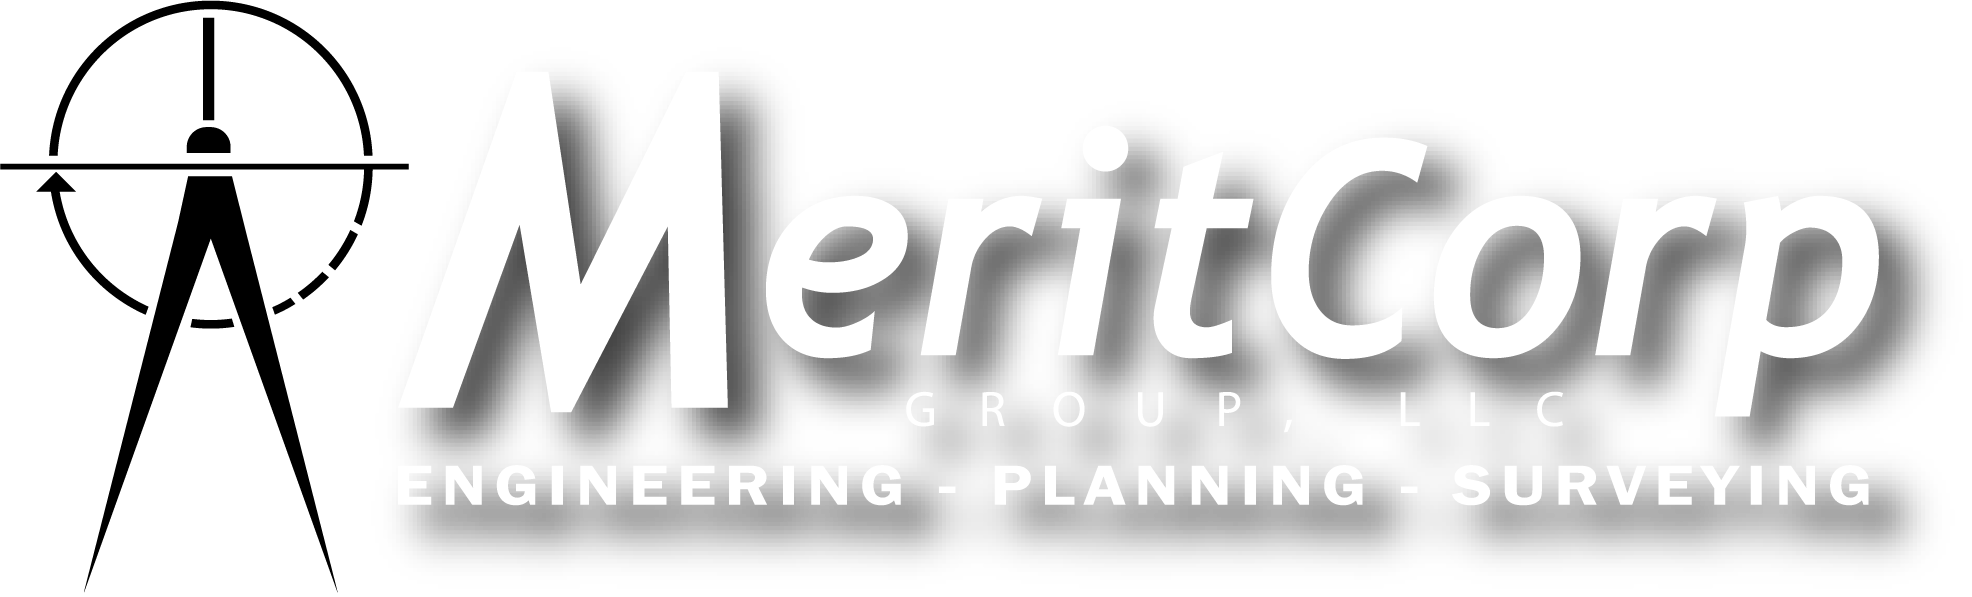 MeritCorp Group LLC